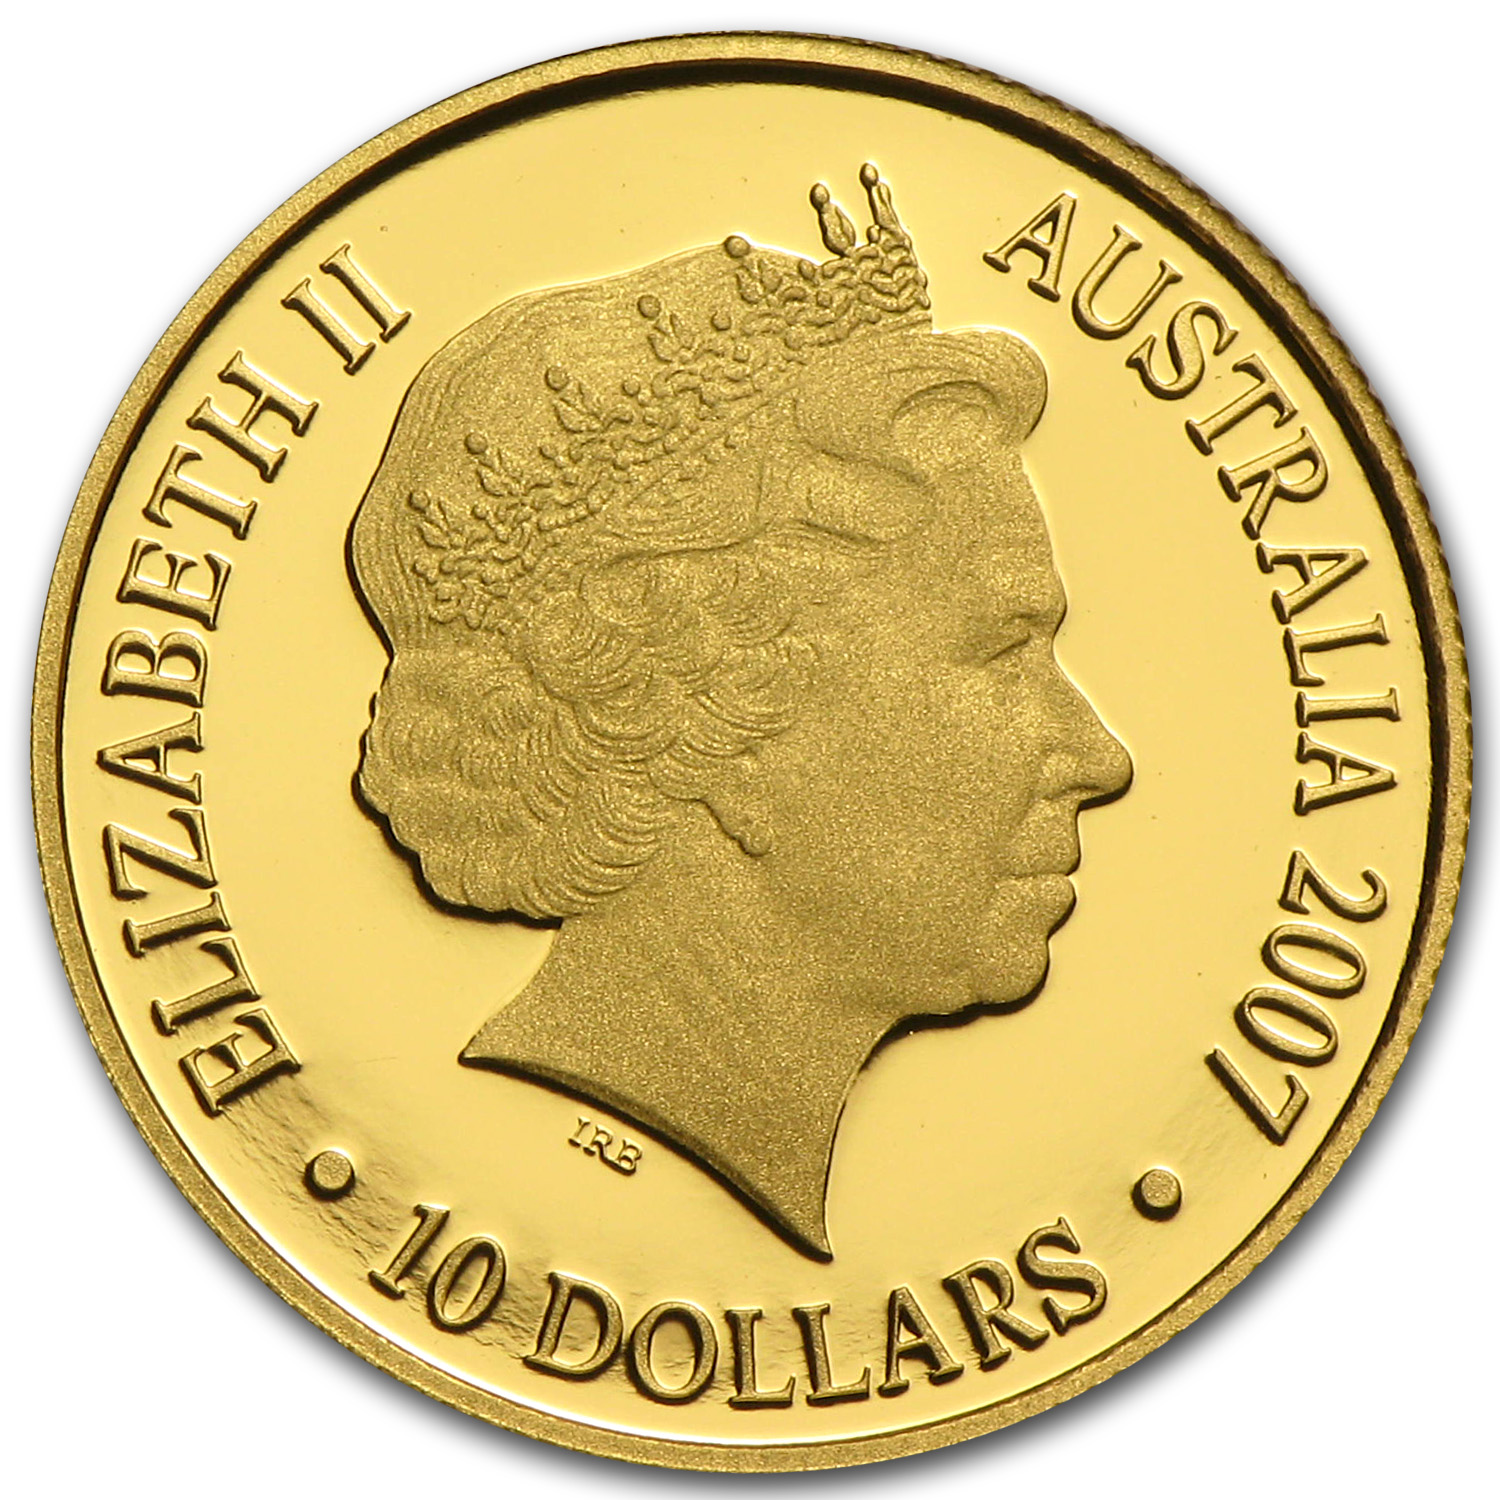 2007 Australia 1/10 oz Proof Gold Year of the Pig